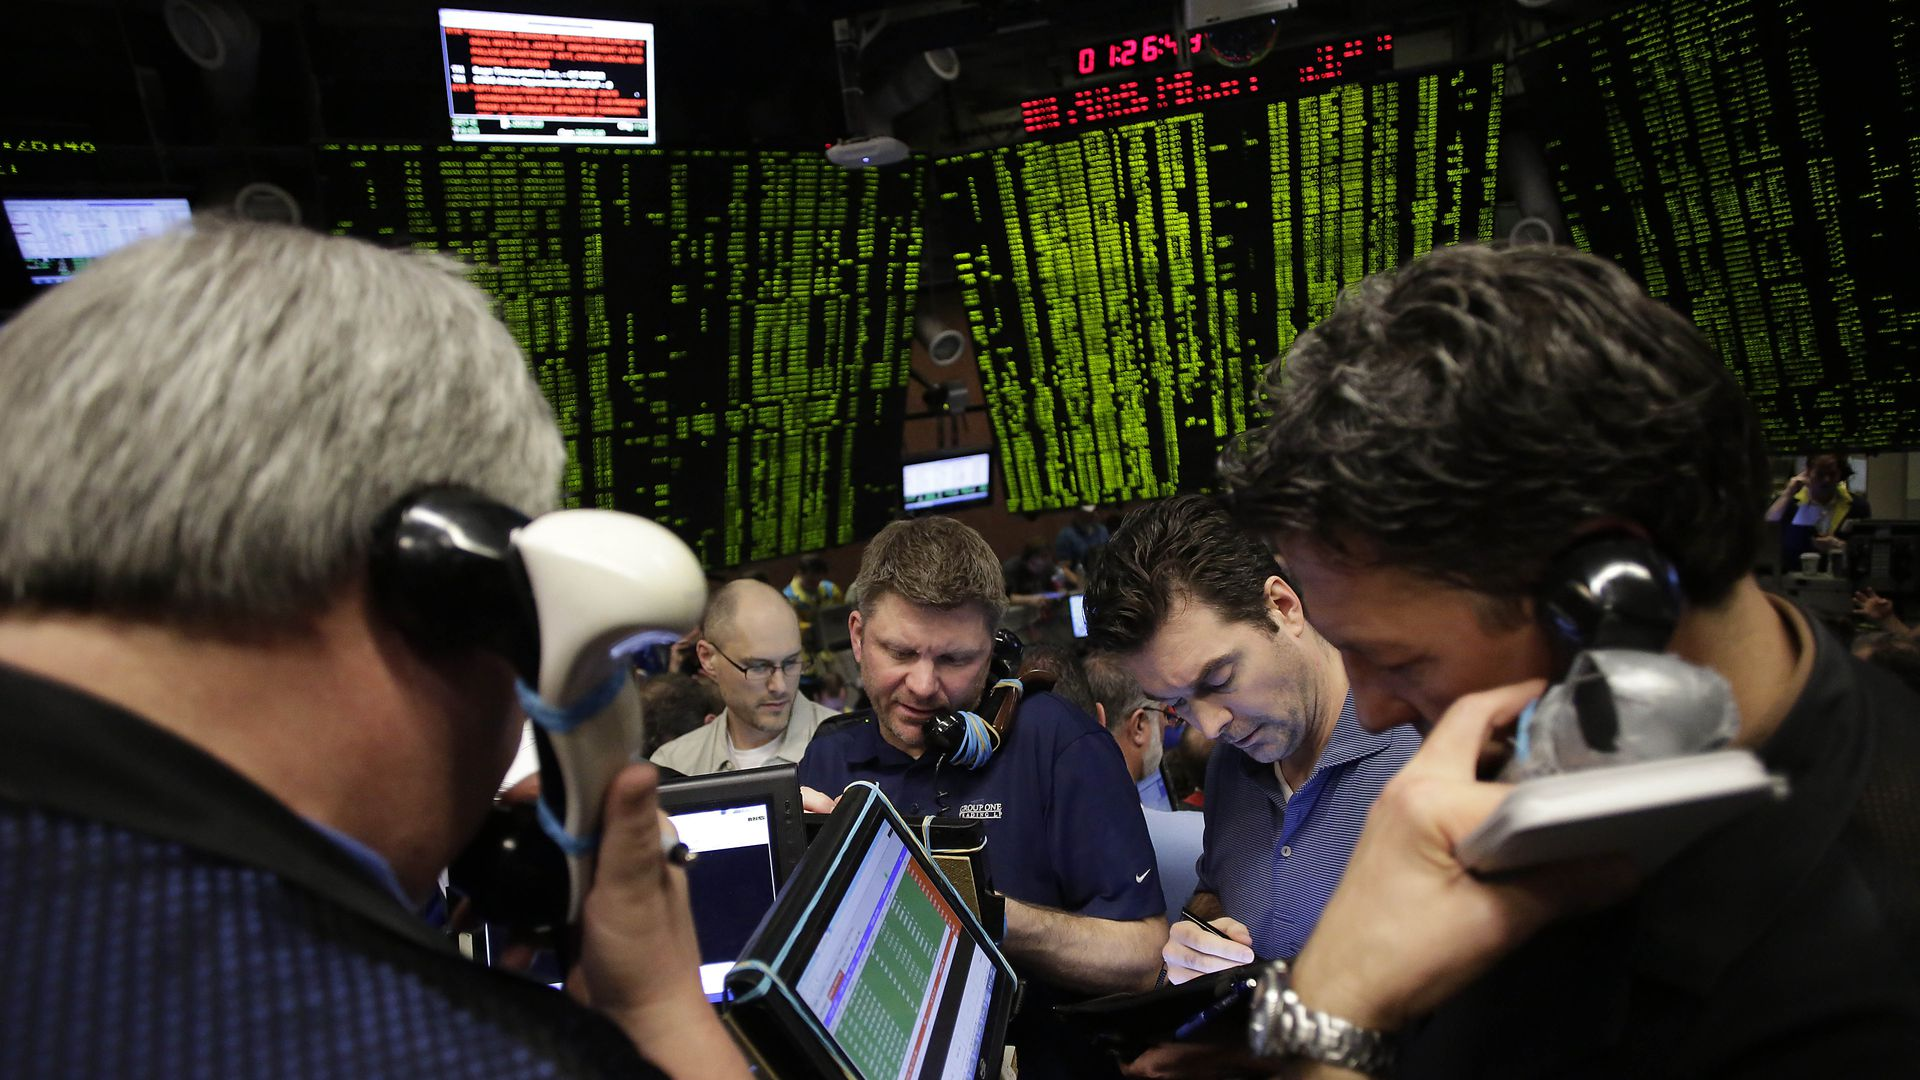 In this image, traders work at the stock market floor and take calls.